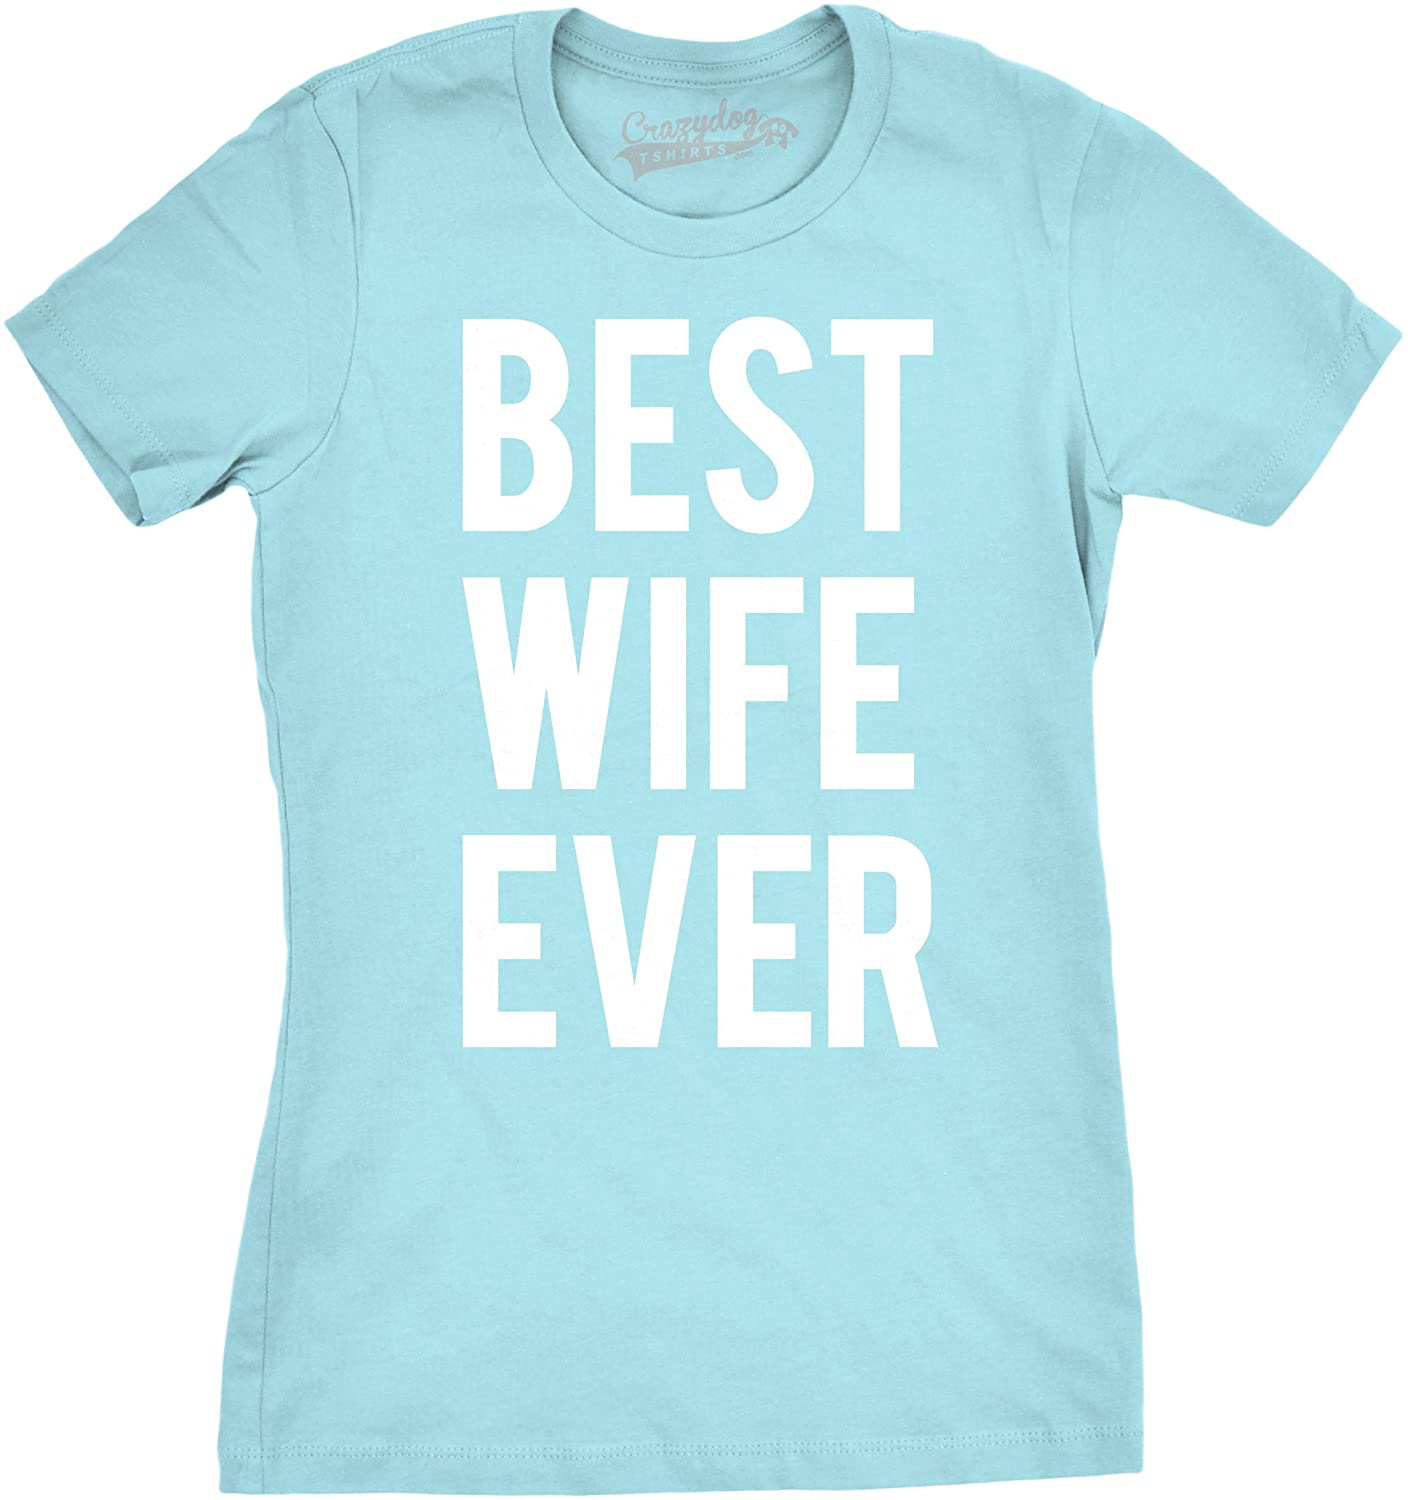 cd354df5d Amazon.com: Womens Best Wife Ever T Shirt Cute Tee for Significant Other:  Clothing